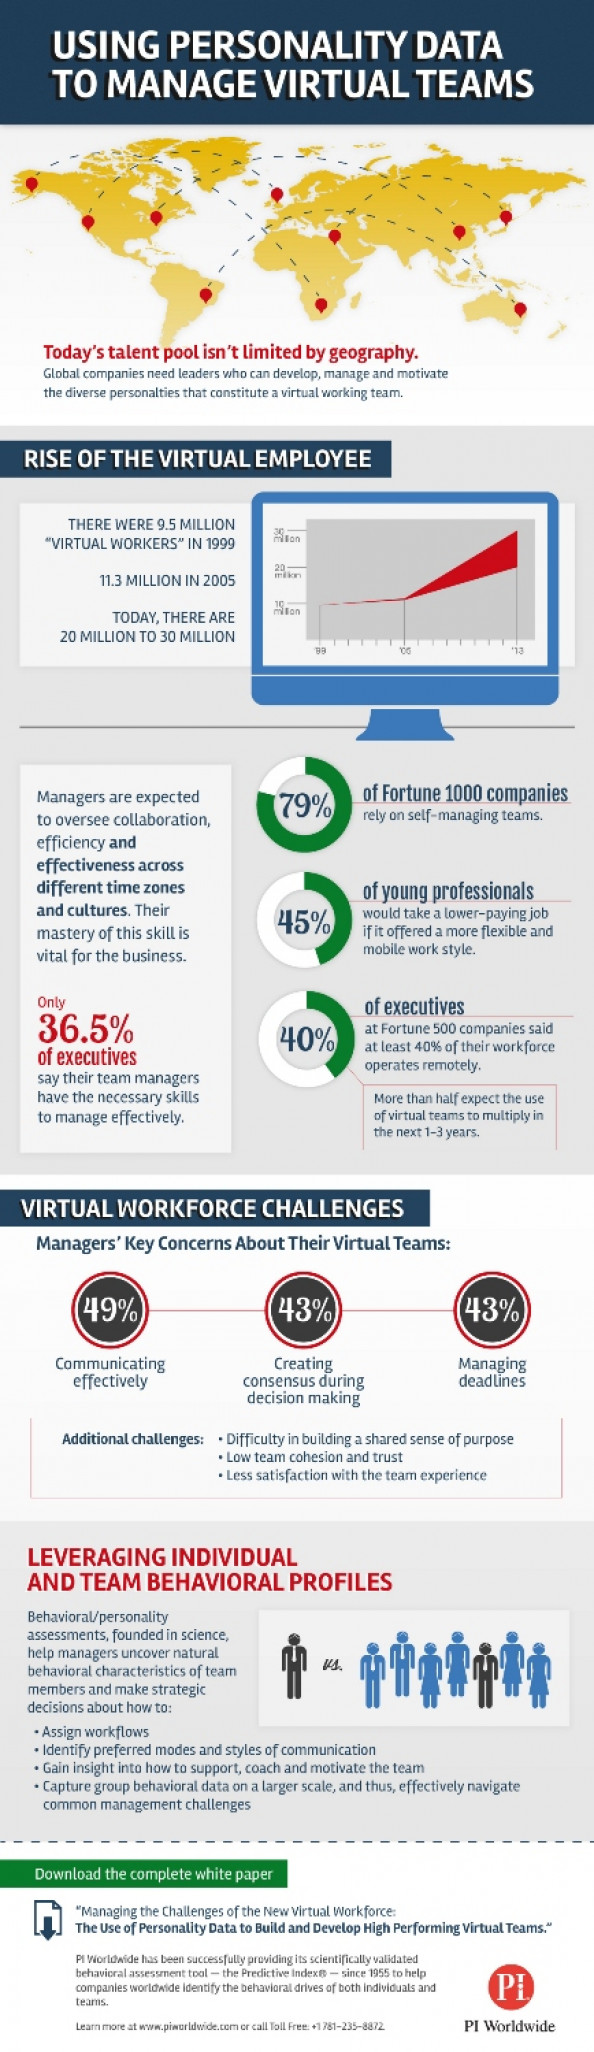 Behavioral Insights For A Virtual Workforce Infographic